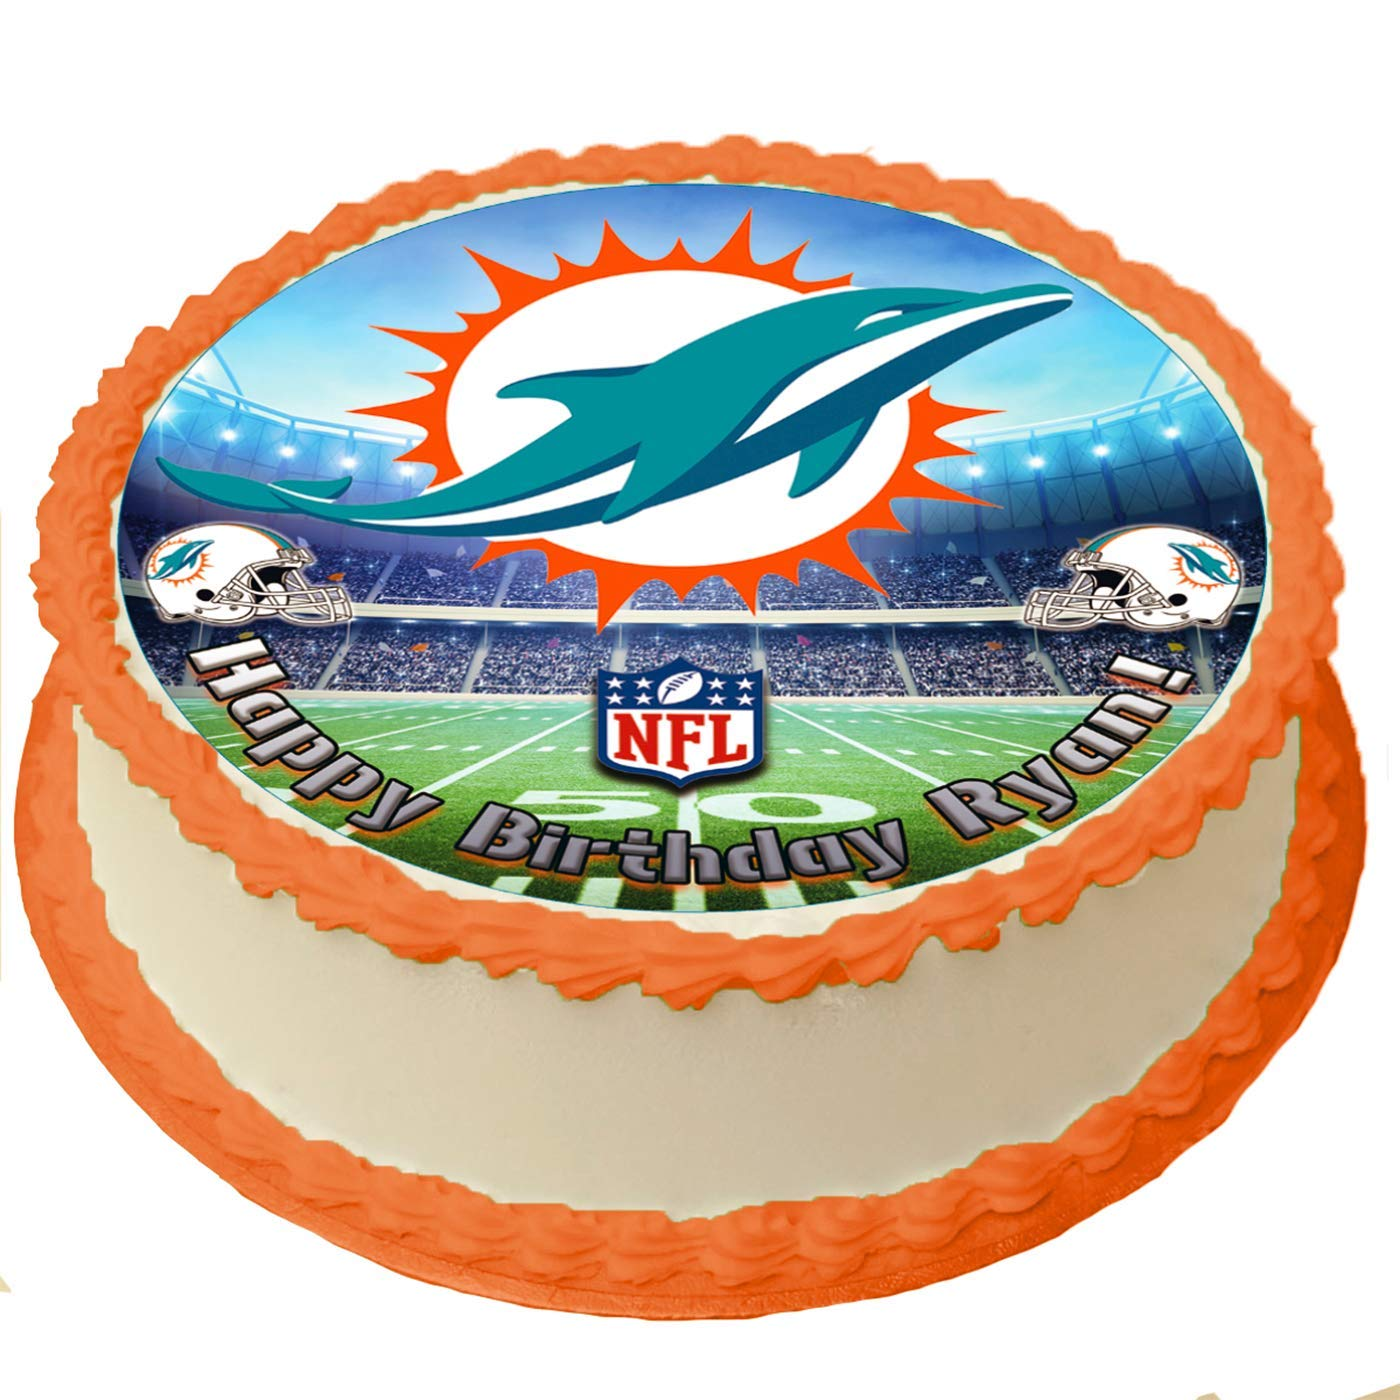 Incredible Miami Dolphins Nfl Personalized Cake Topper Icing Sugar Paper 8 Funny Birthday Cards Online Alyptdamsfinfo